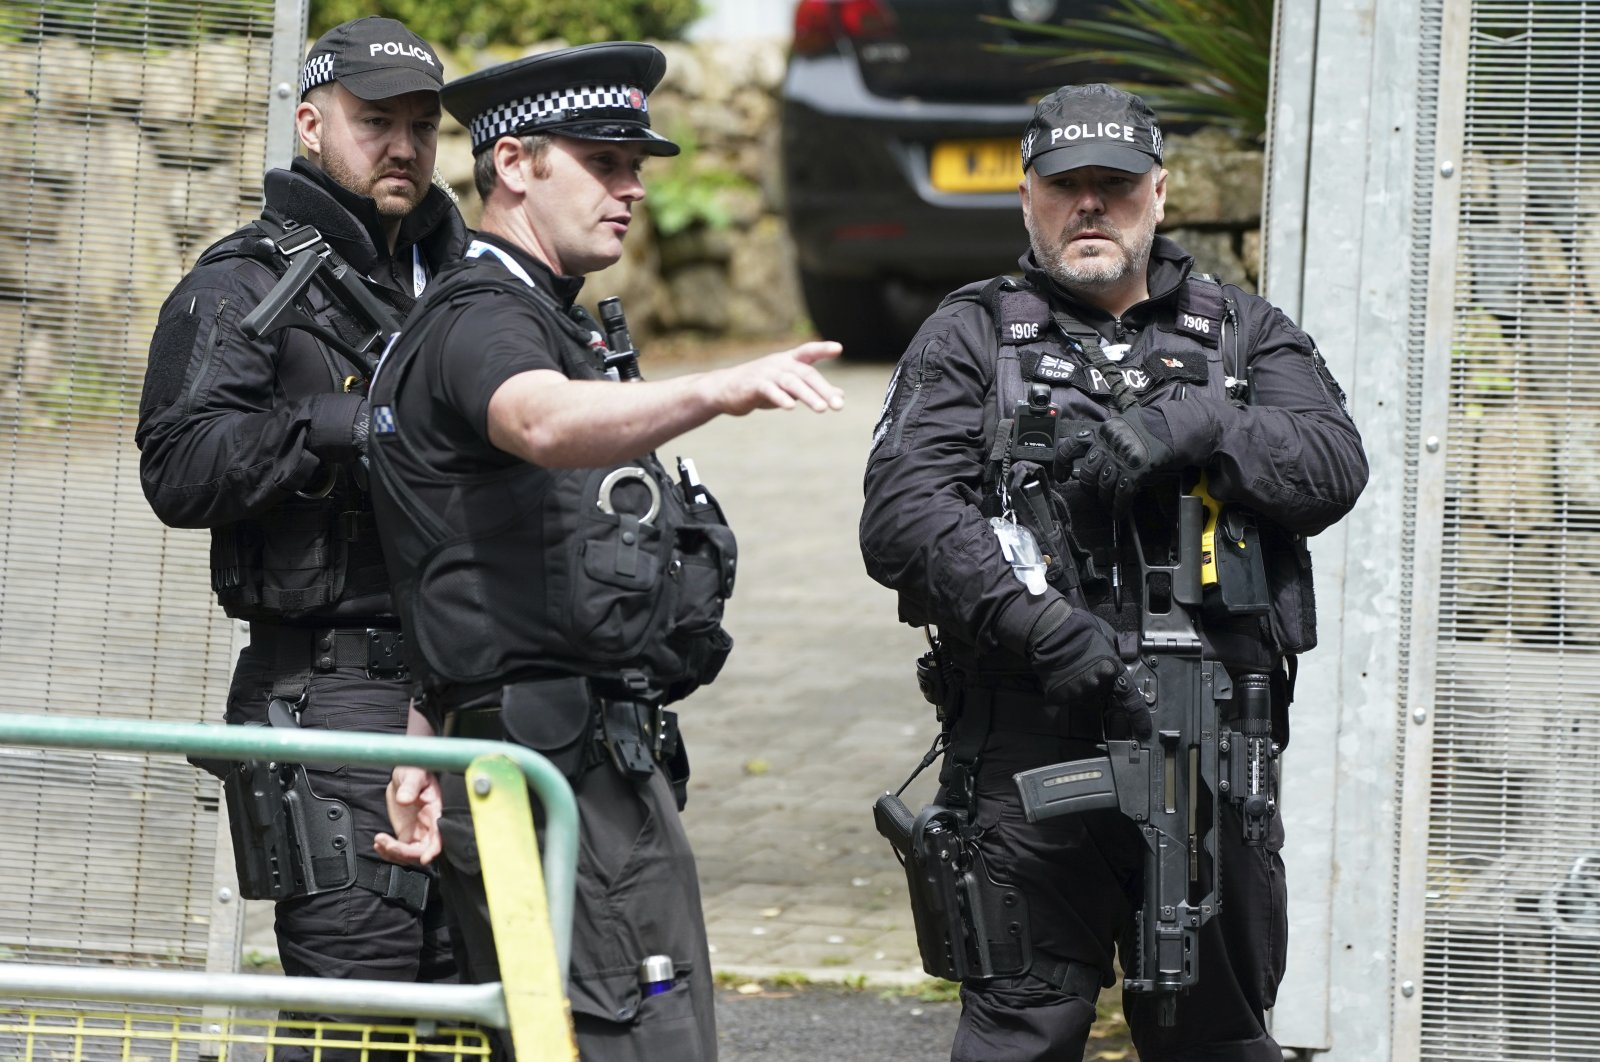 Police speak as they patrol a checkpoint in St. Ives, Cornwall, England, June 10, 2021. (AP Photo)